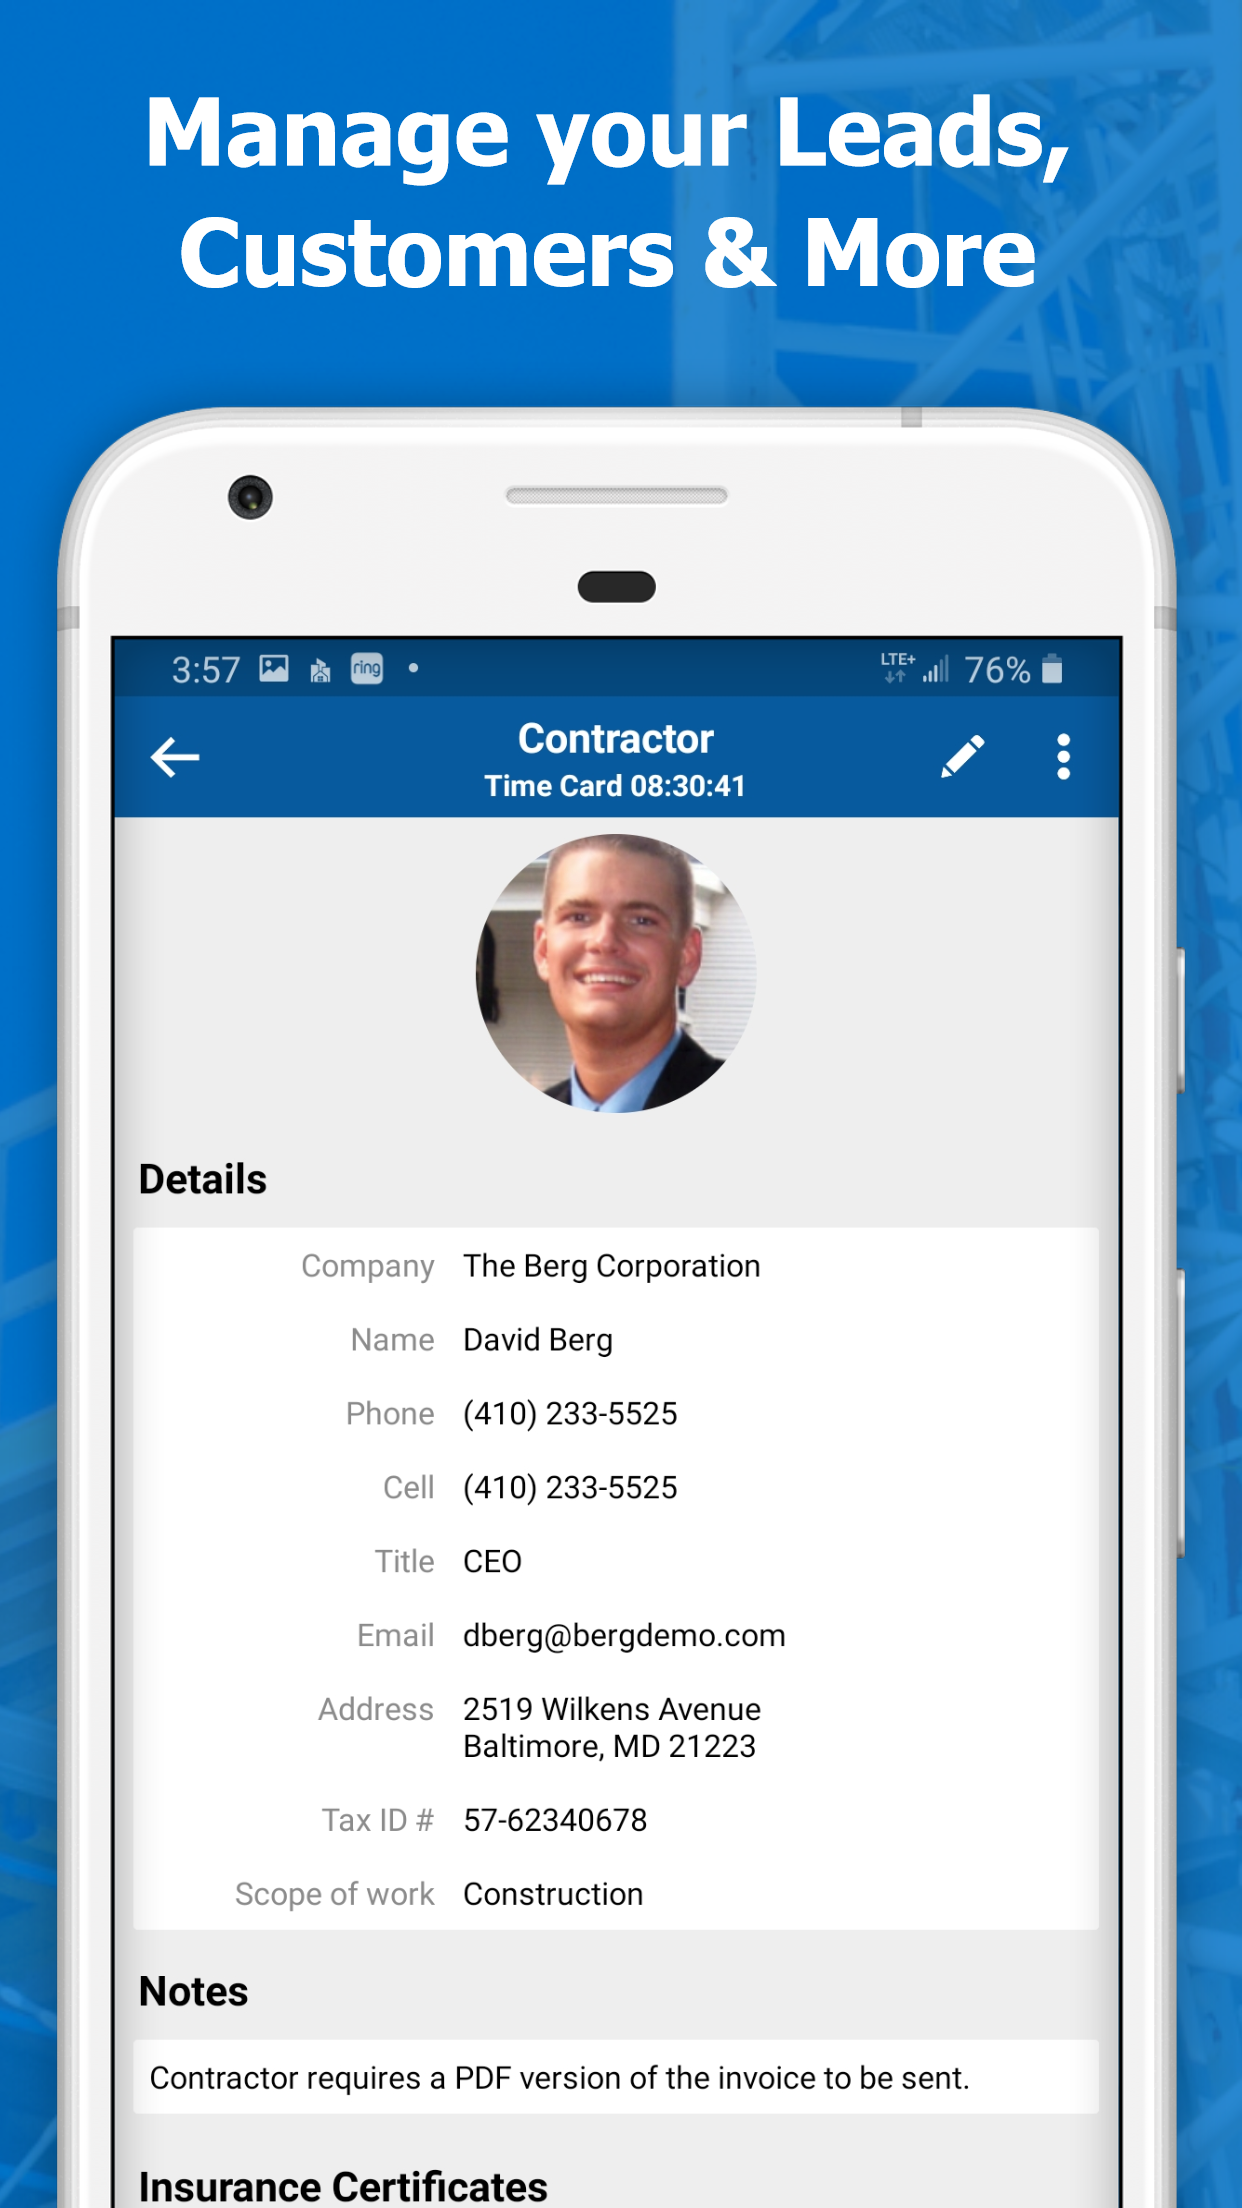 Manage your contacts all from one place.